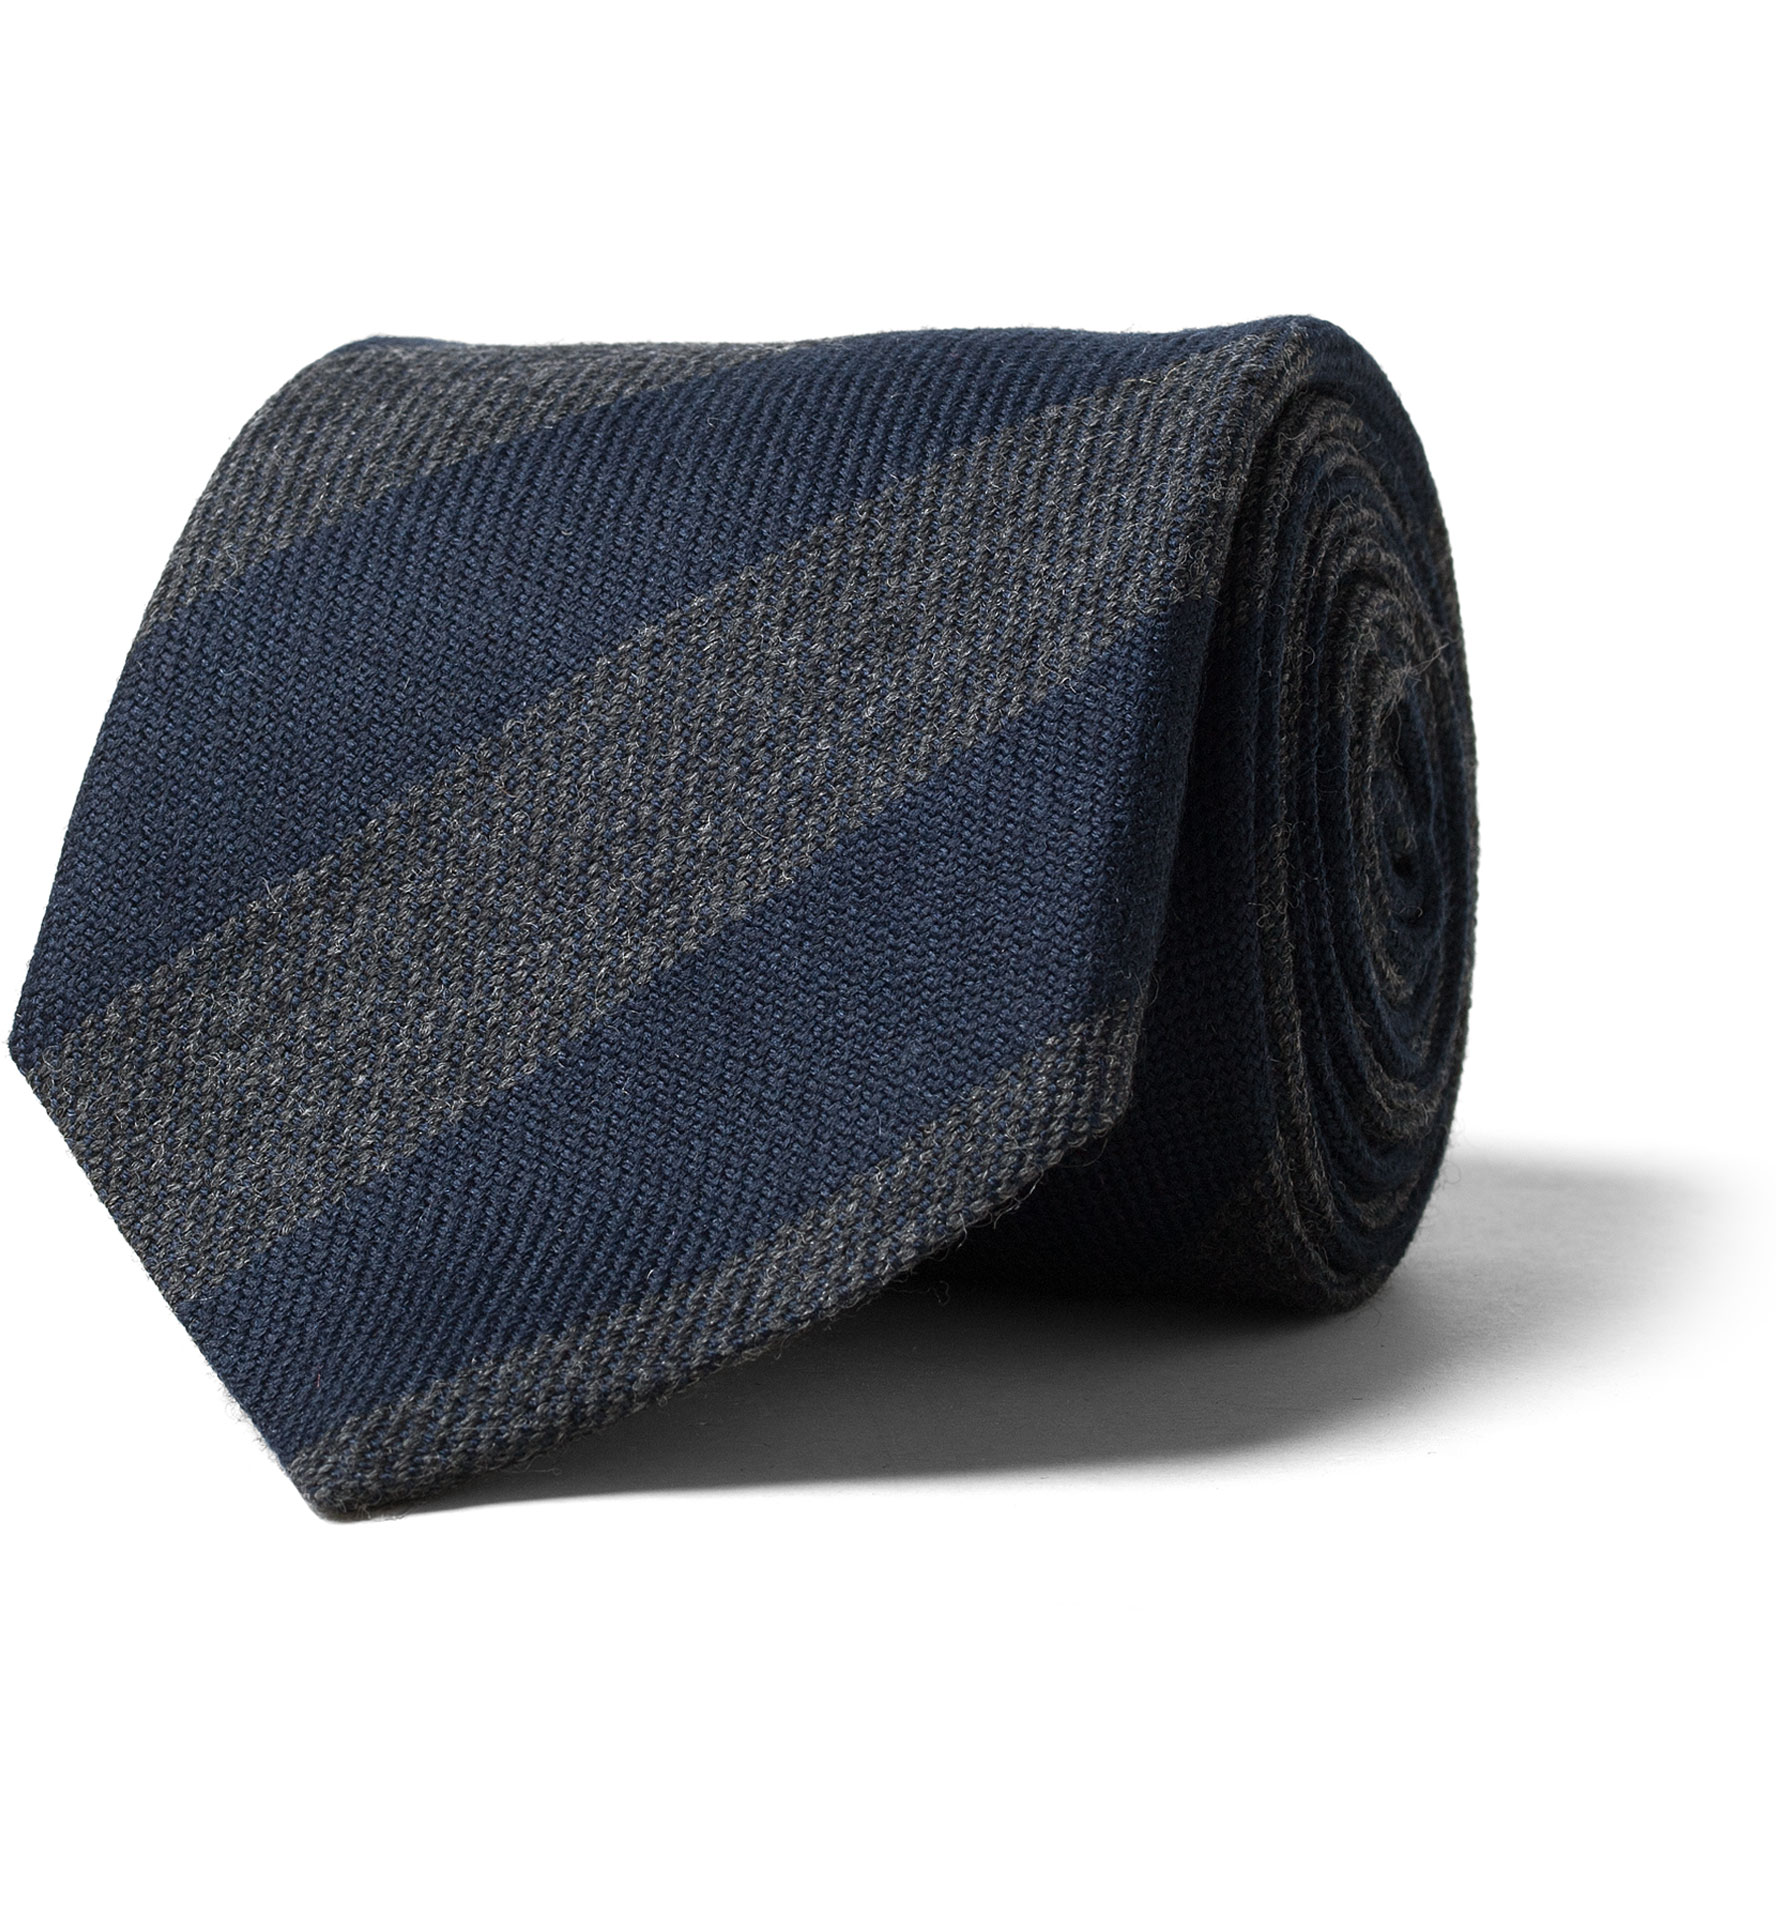 Zoom Image of Navy and Charcoal Striped Wool Tie